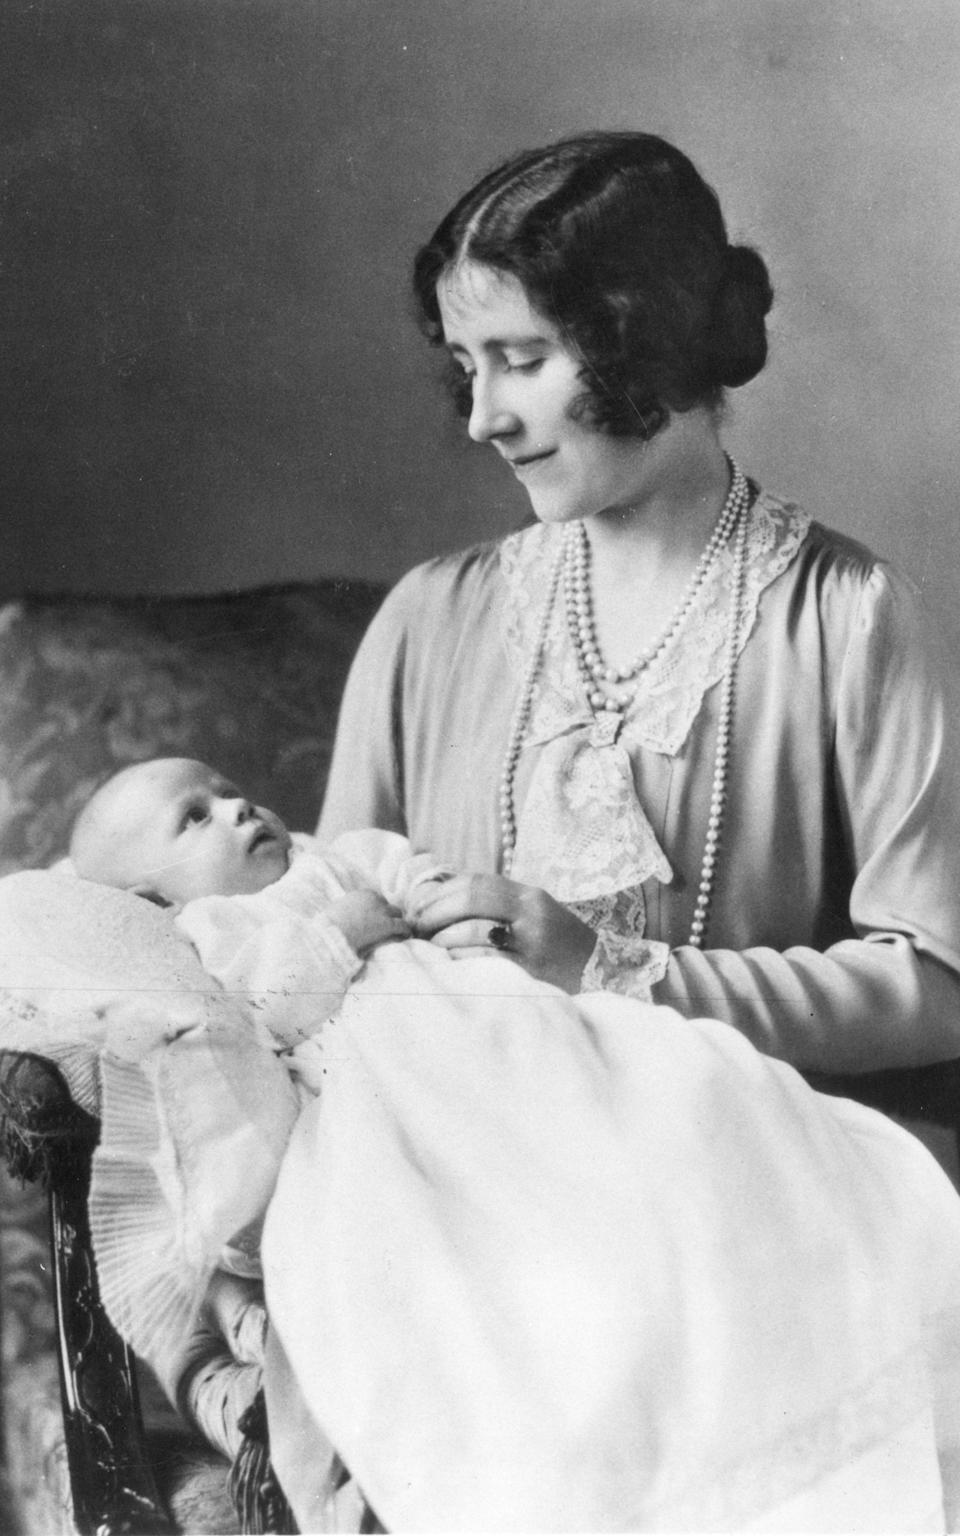 The Queen Mother wearing her original sapphire engagement ring, in a portrait with Princess Margaret in 1930 - Keystone/Getty Images